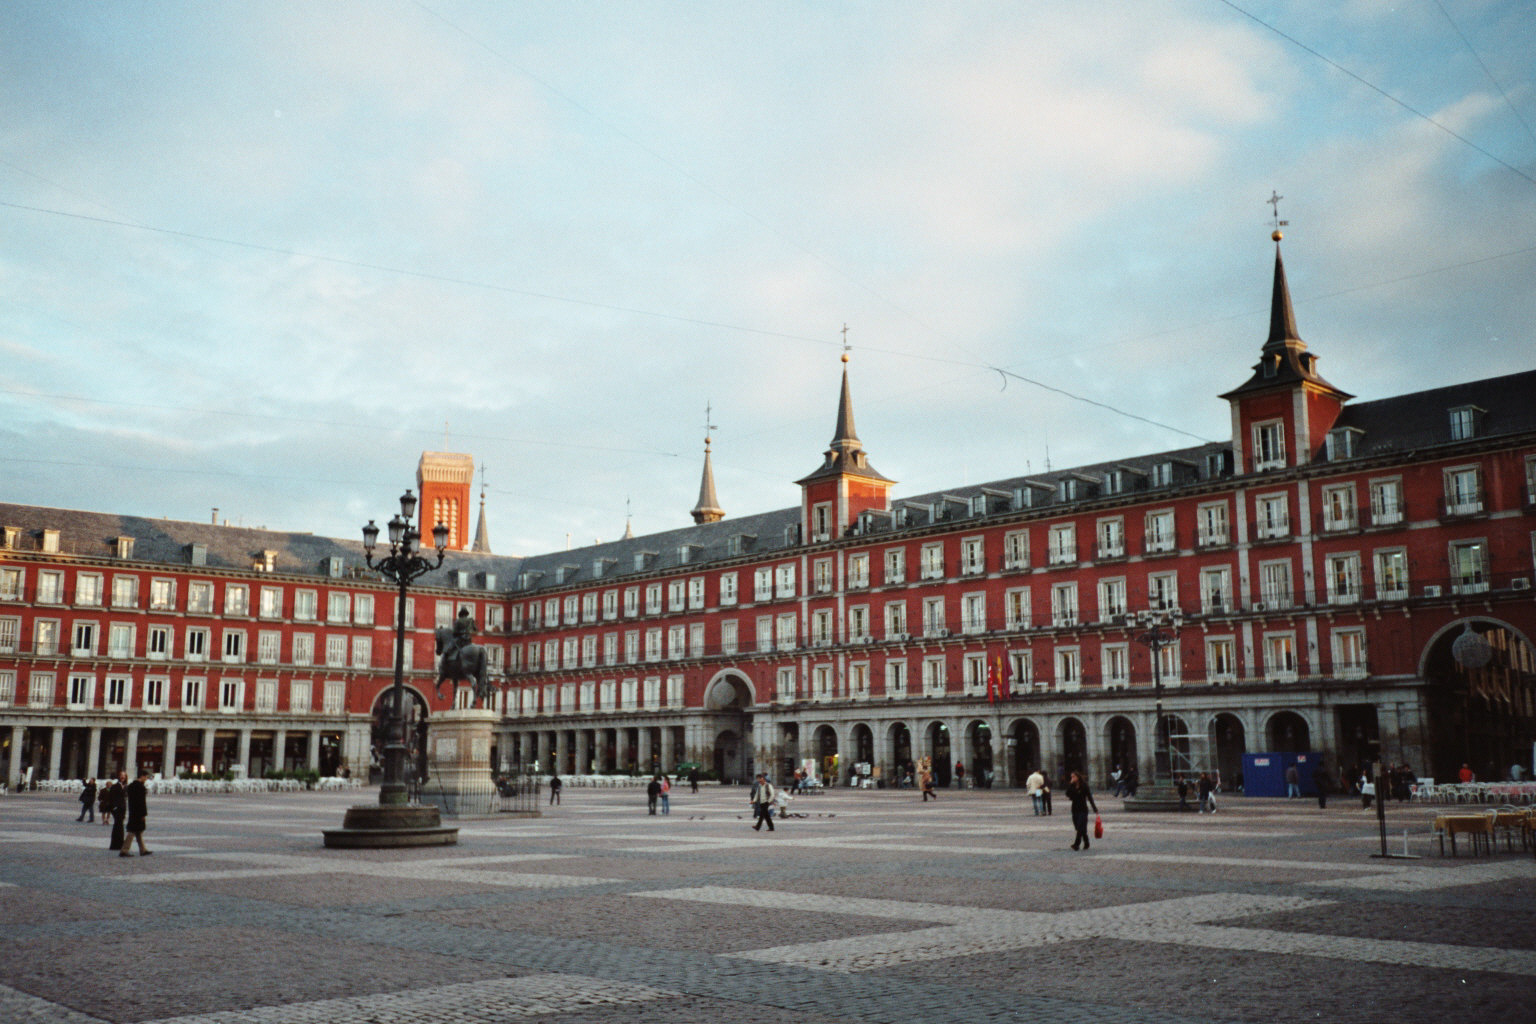 File:Plaza Mayor, Madrid.jpg